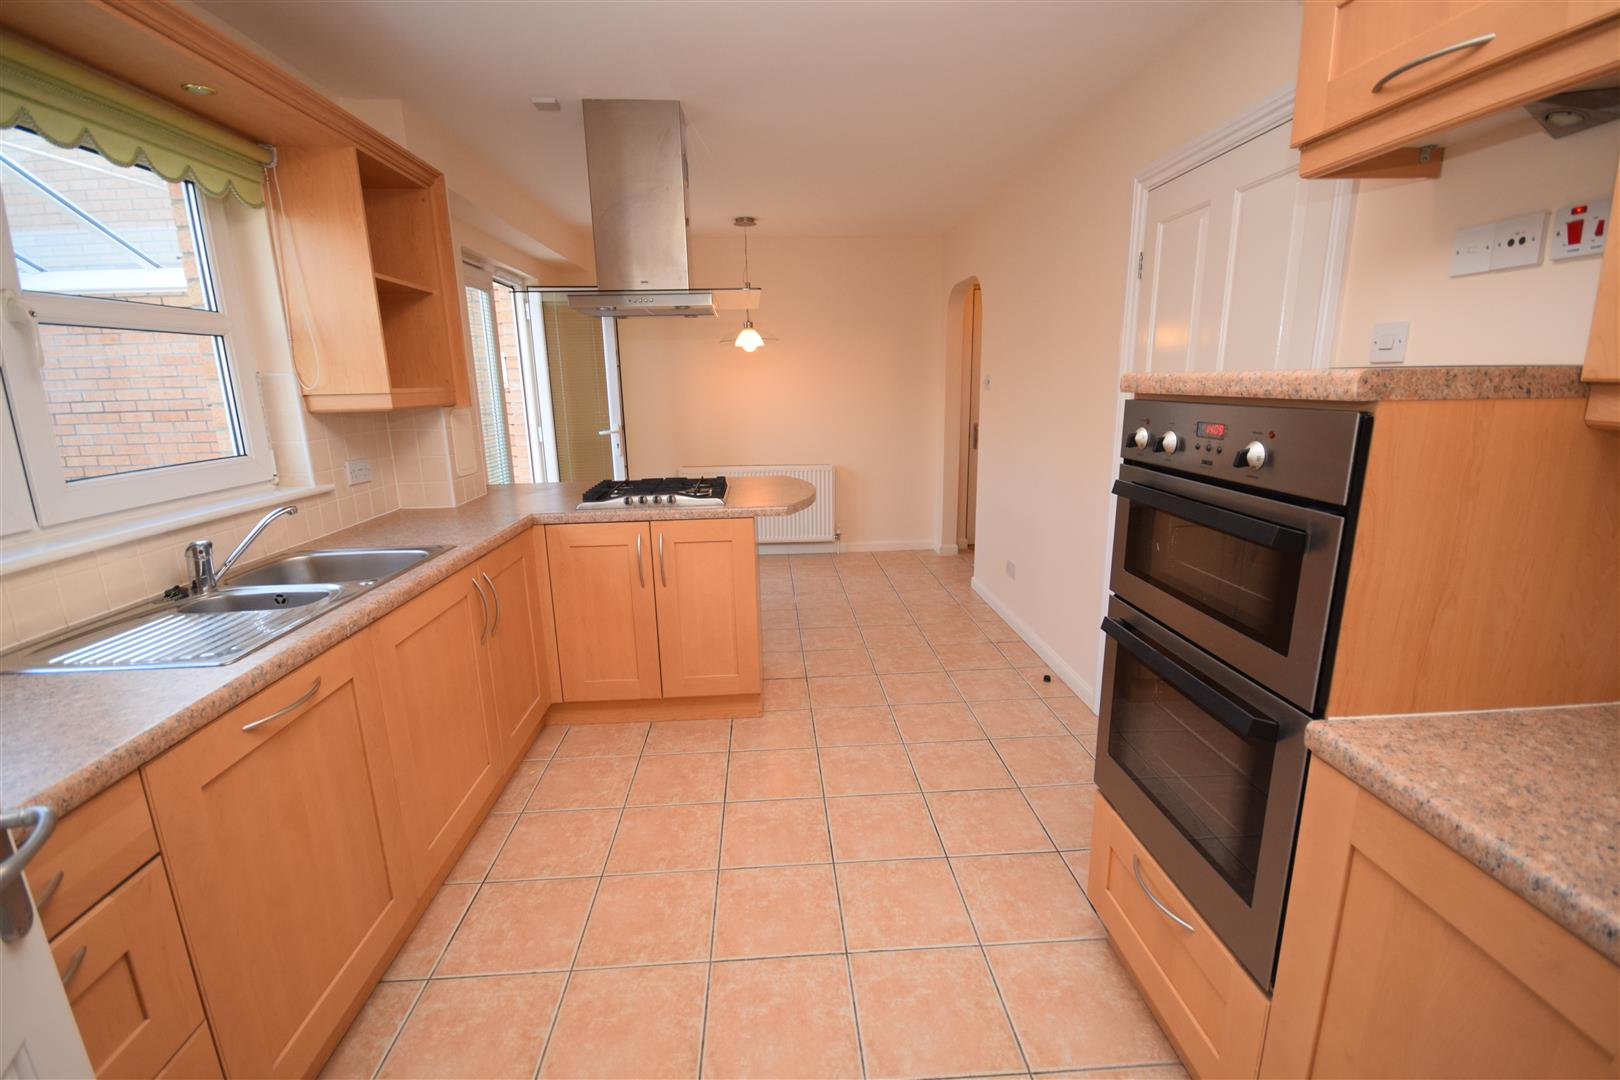 Dufftown Place, Perth, Perthshire, PH1 3FT, UK